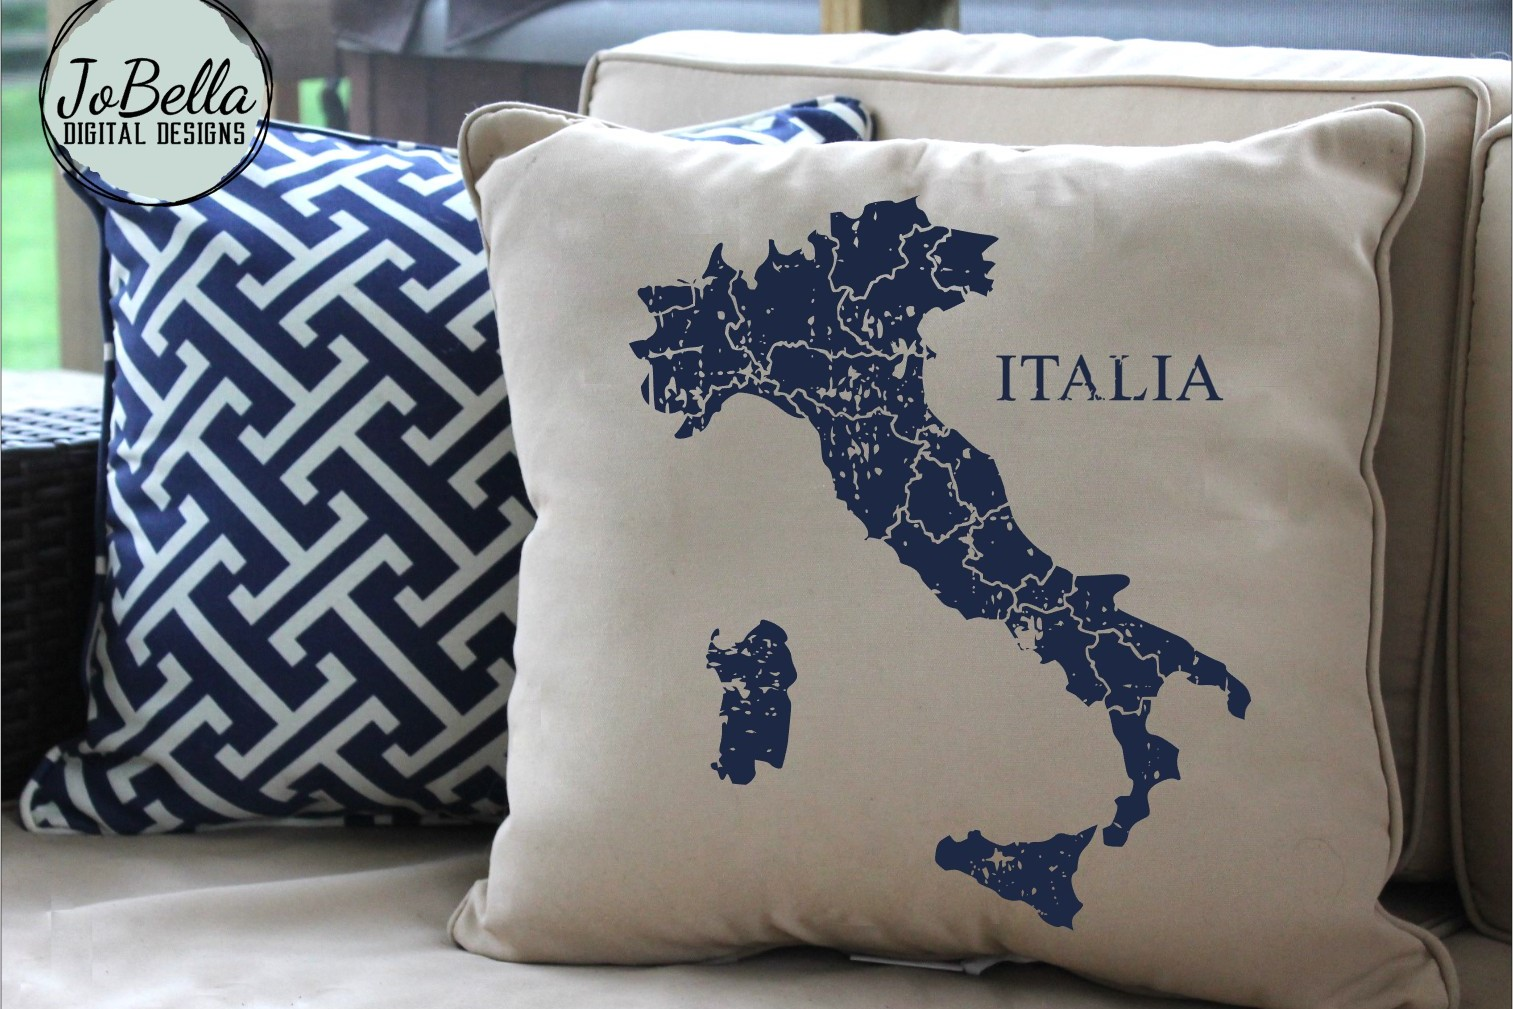 Italy SVG and Printable Distressed Map with Regional Borders example image 3